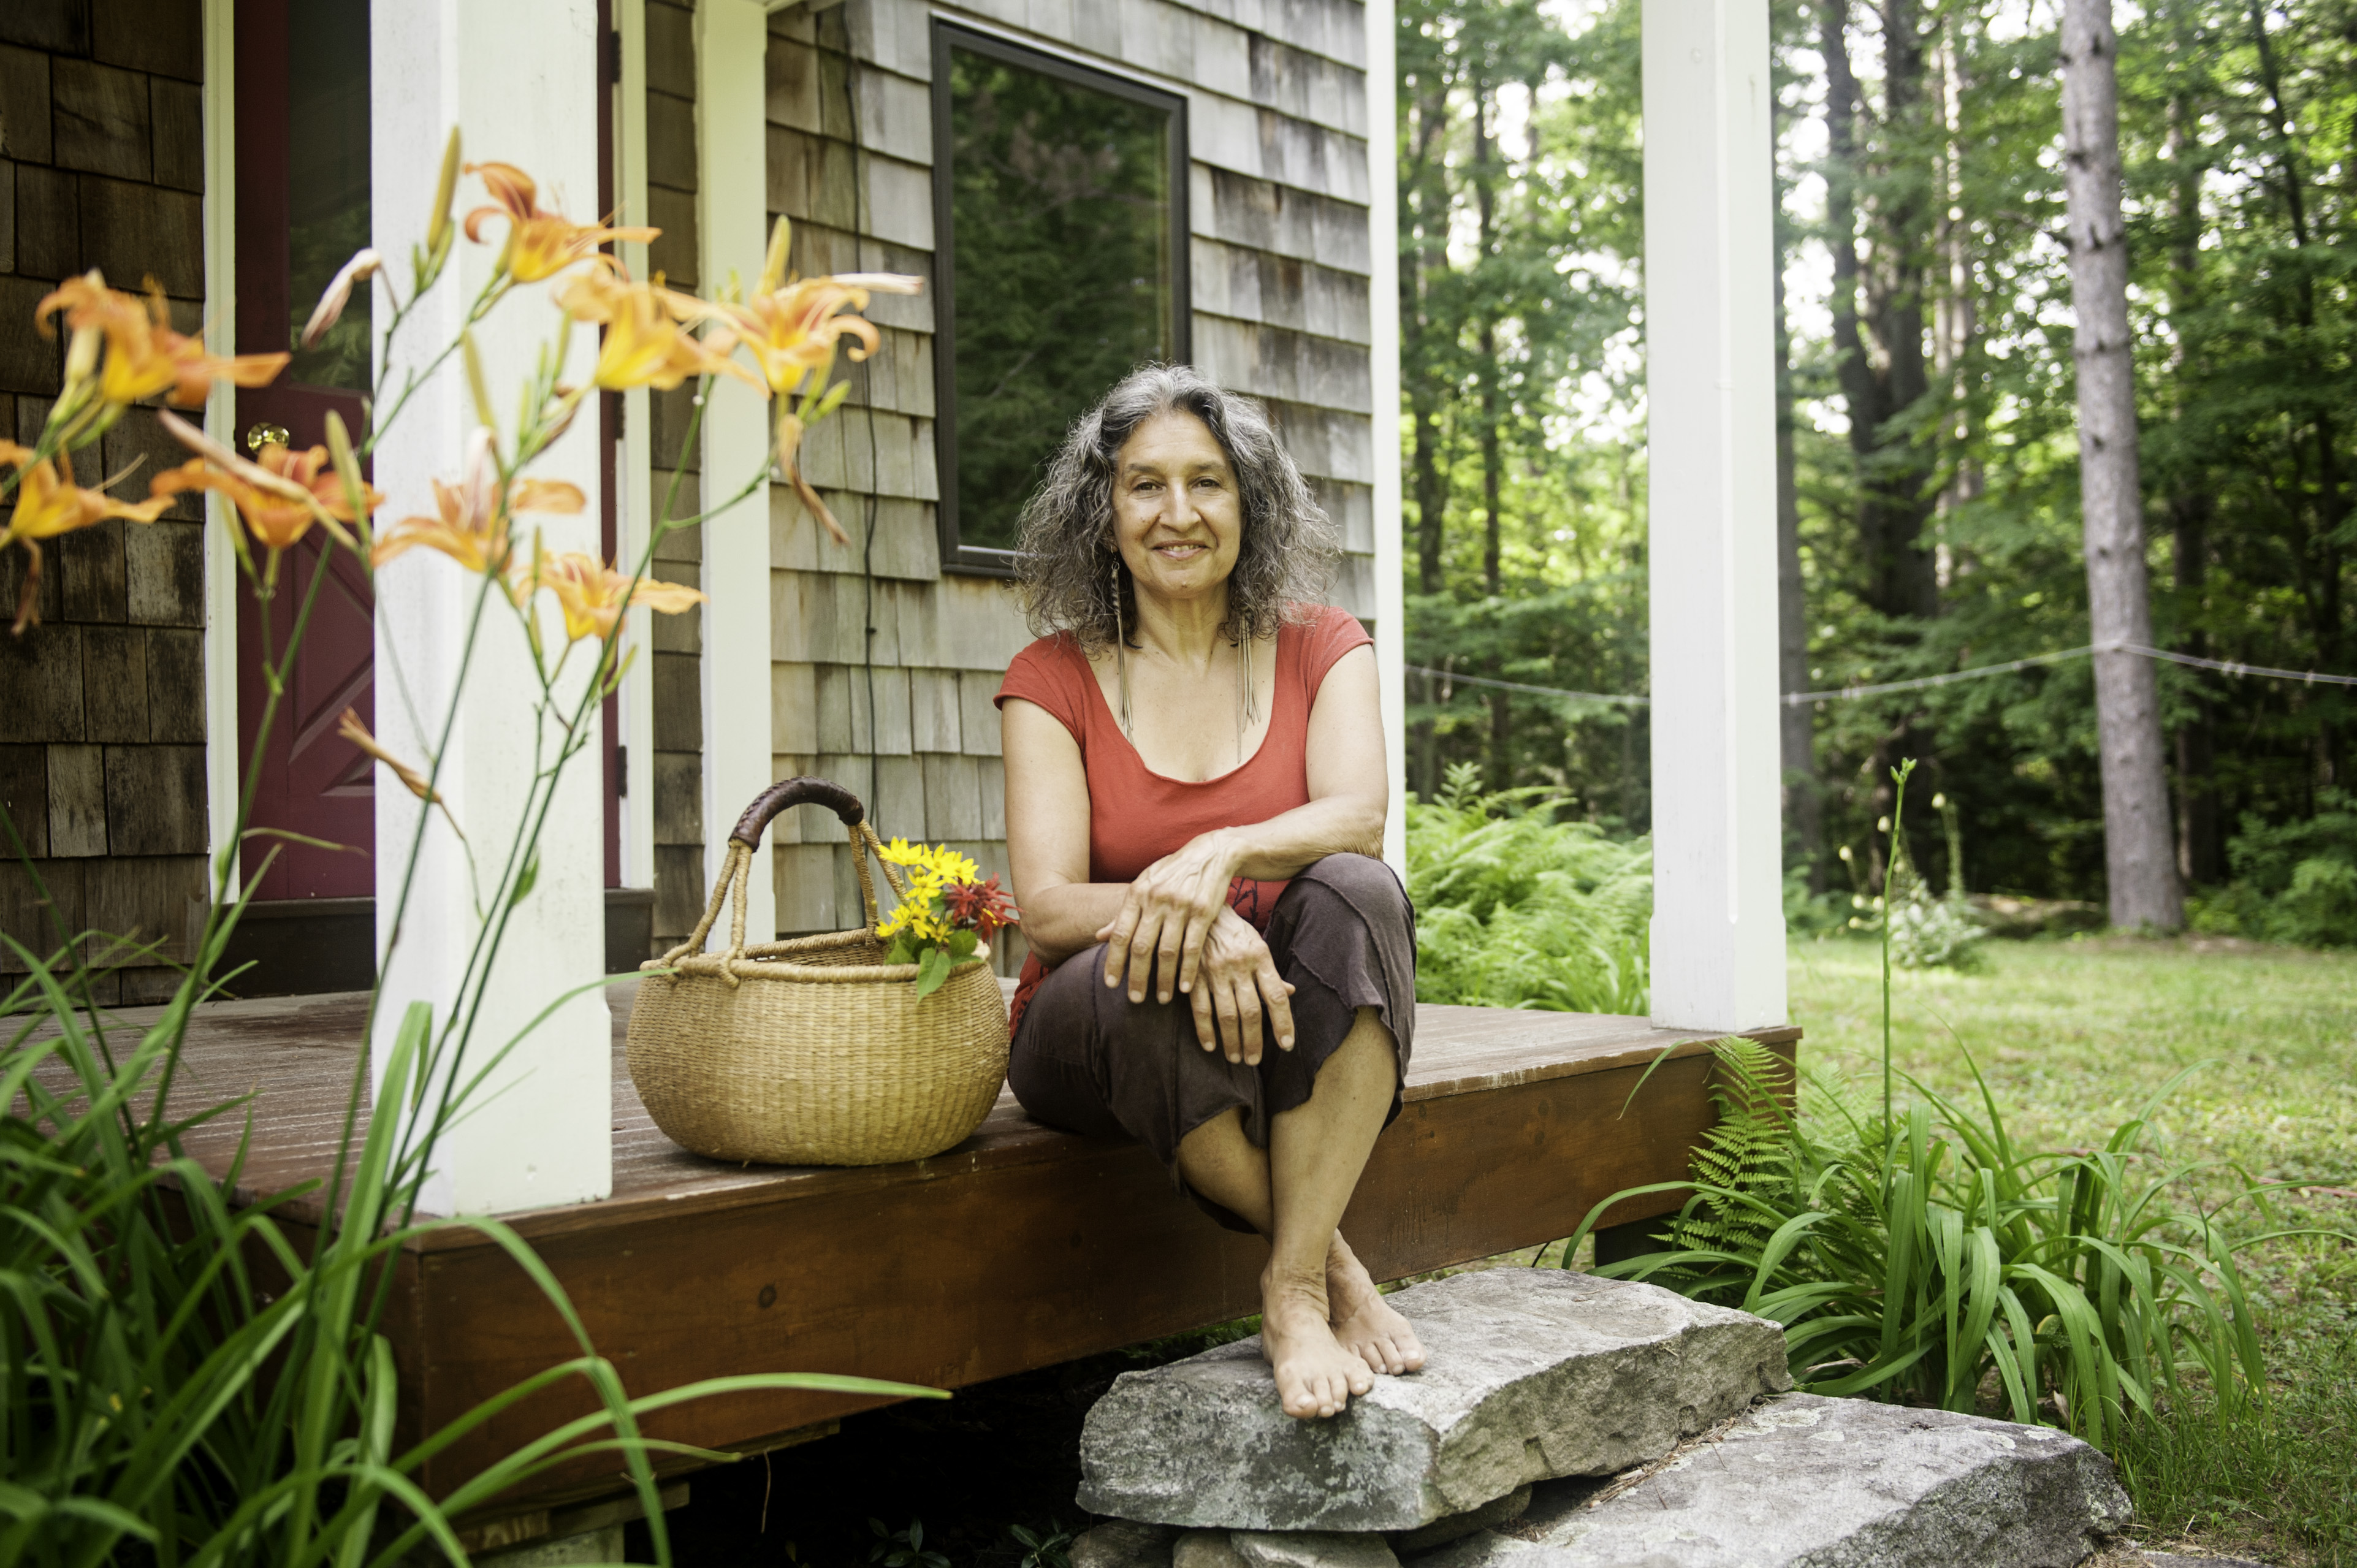 Leslie siting on the back porch of her natural passive solar home in summer